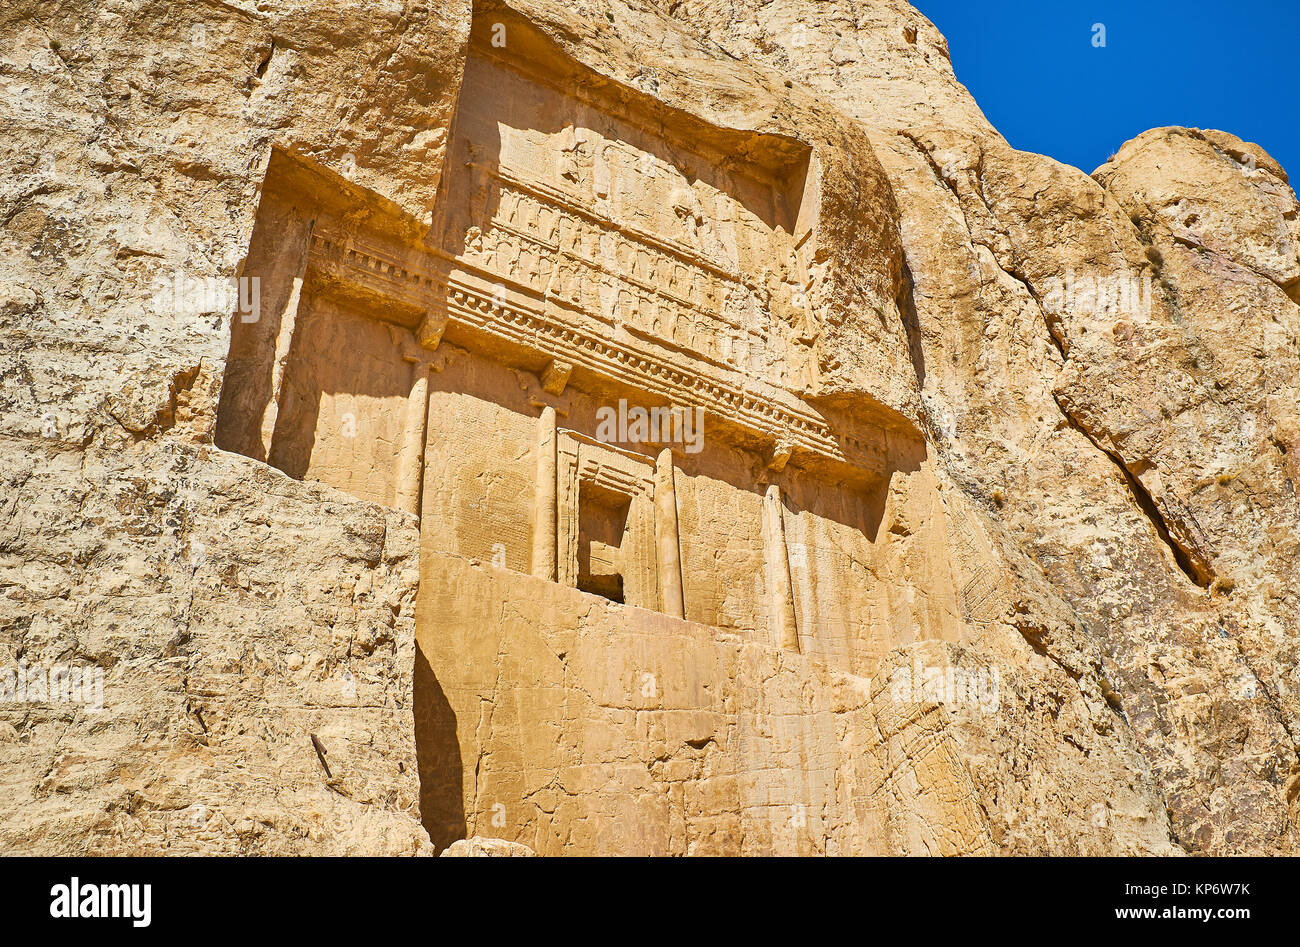 Mausoleum in rock of Naqsh-e Rustam archaeological site, Iran. - Stock Image